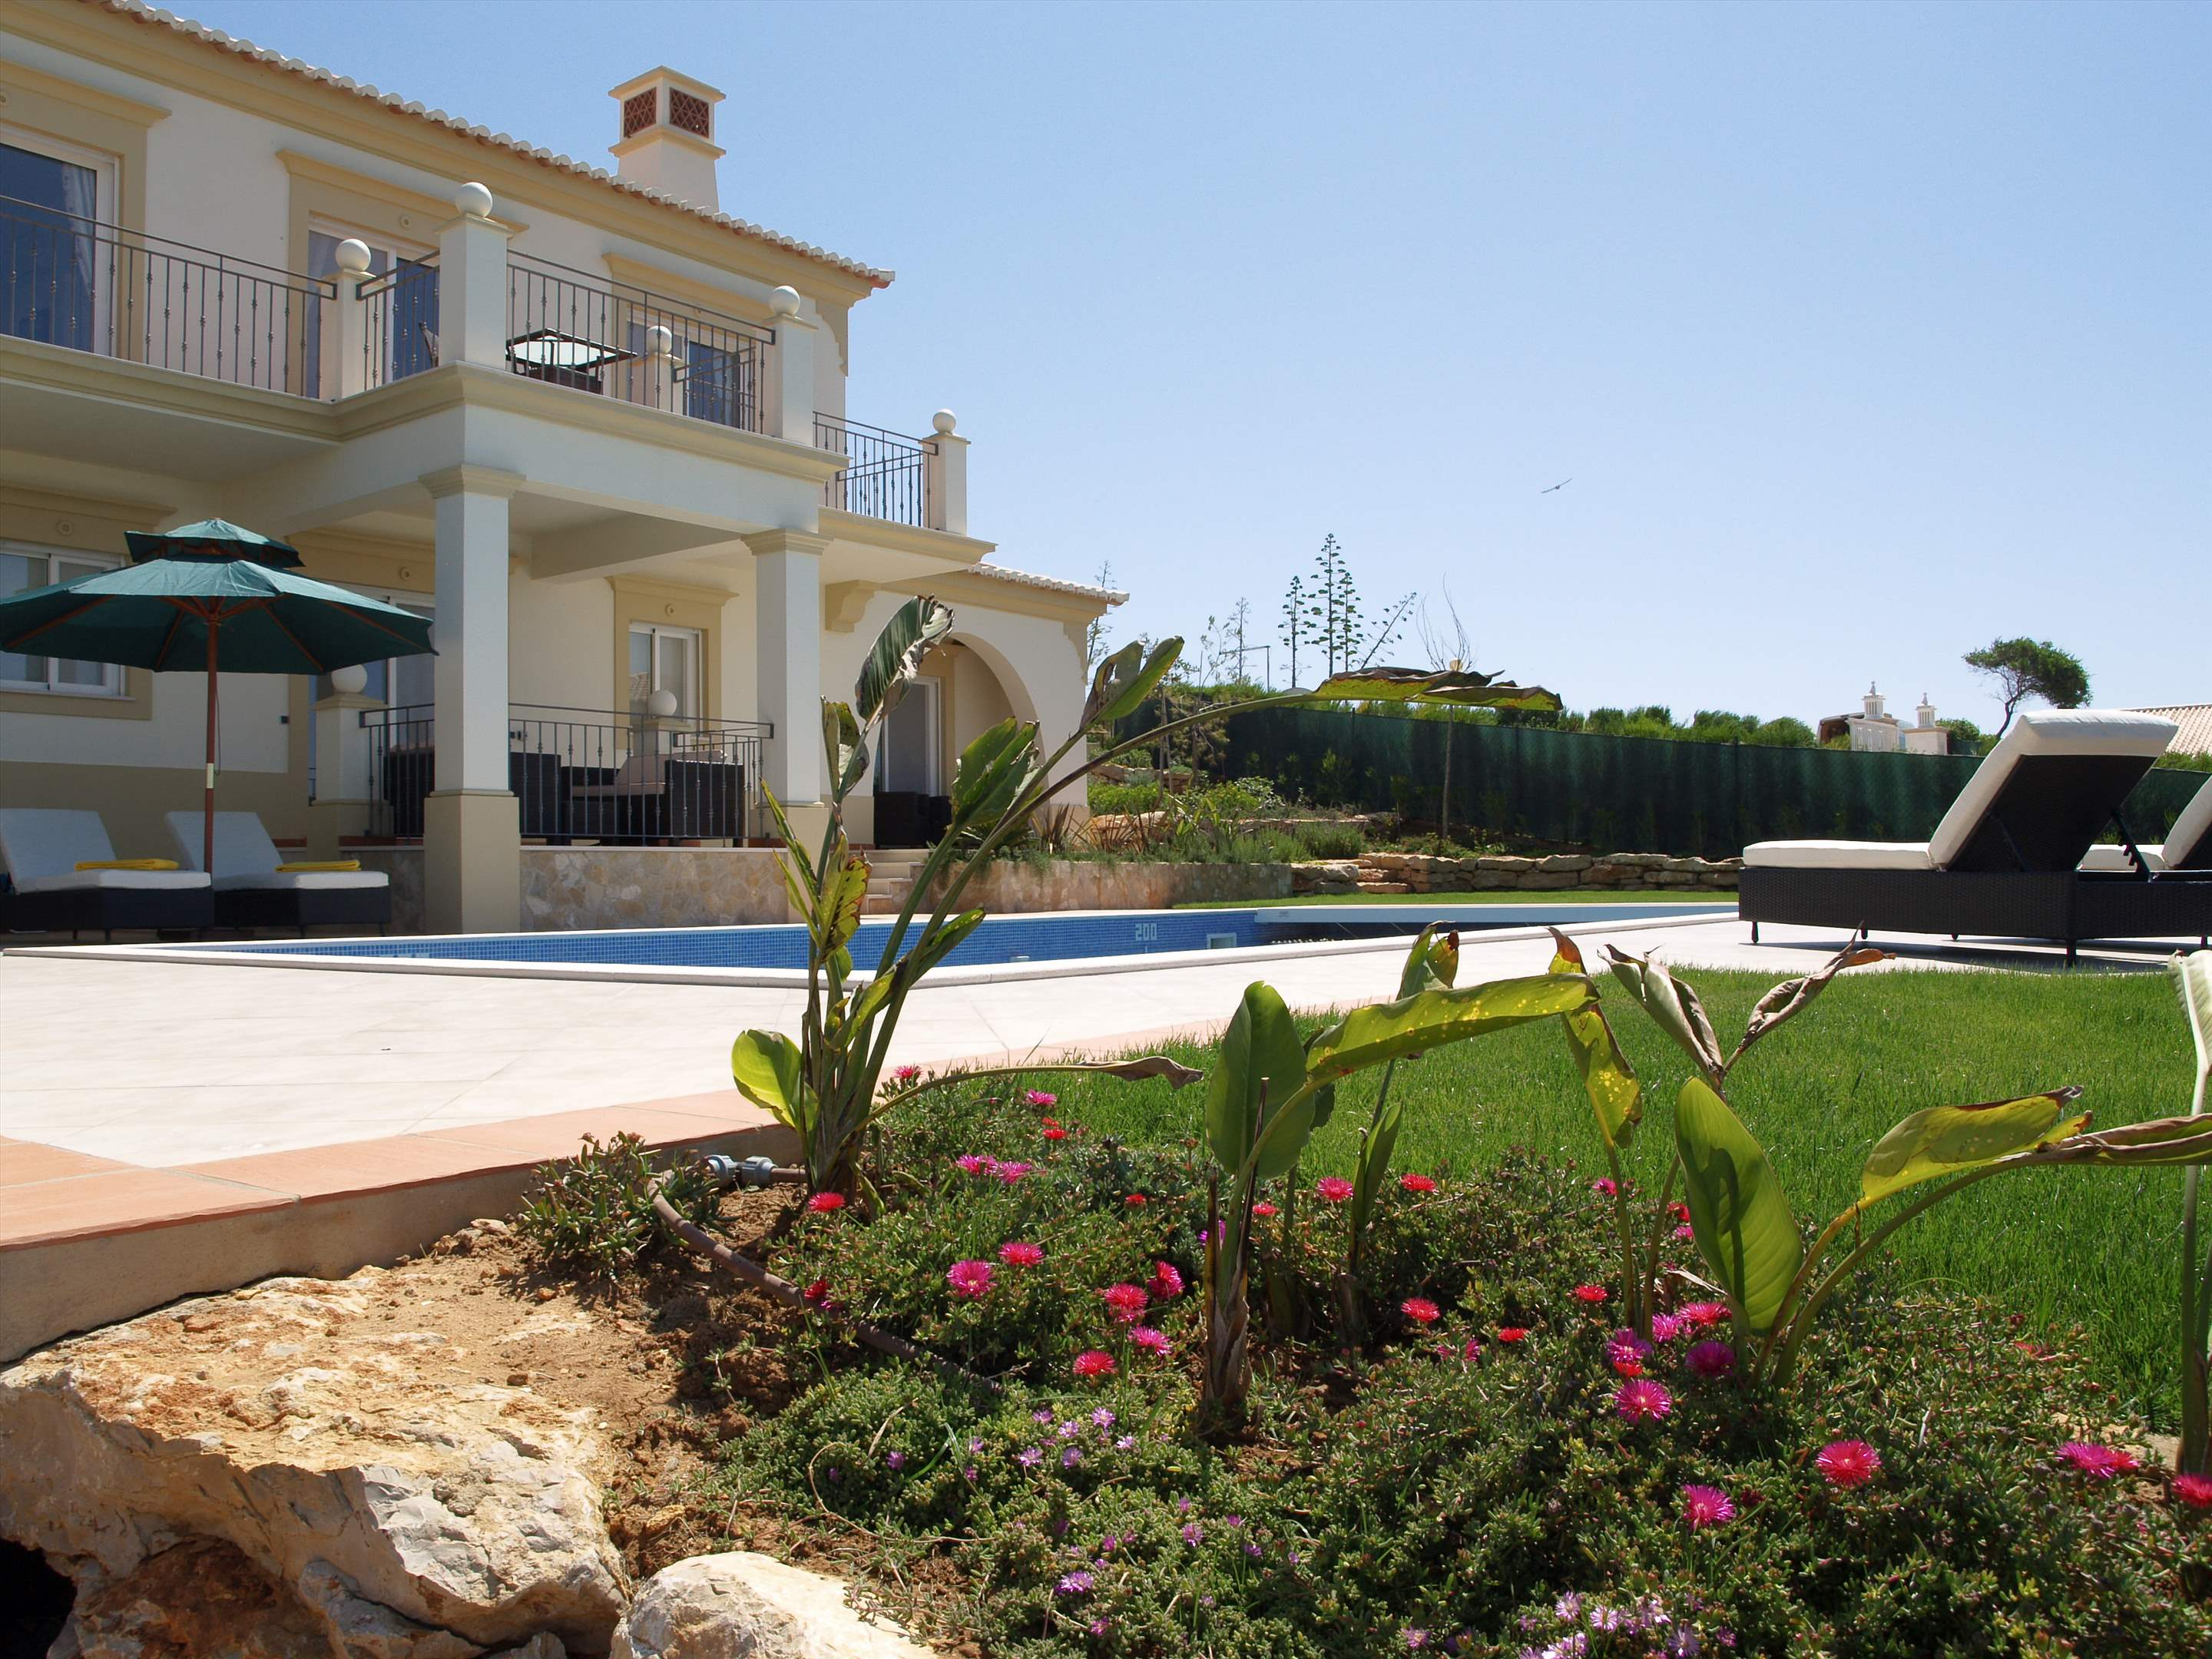 Martinhal Luxury Villa No.44, 3 bedroom villa in Martinhal Sagres, Algarve Photo #3